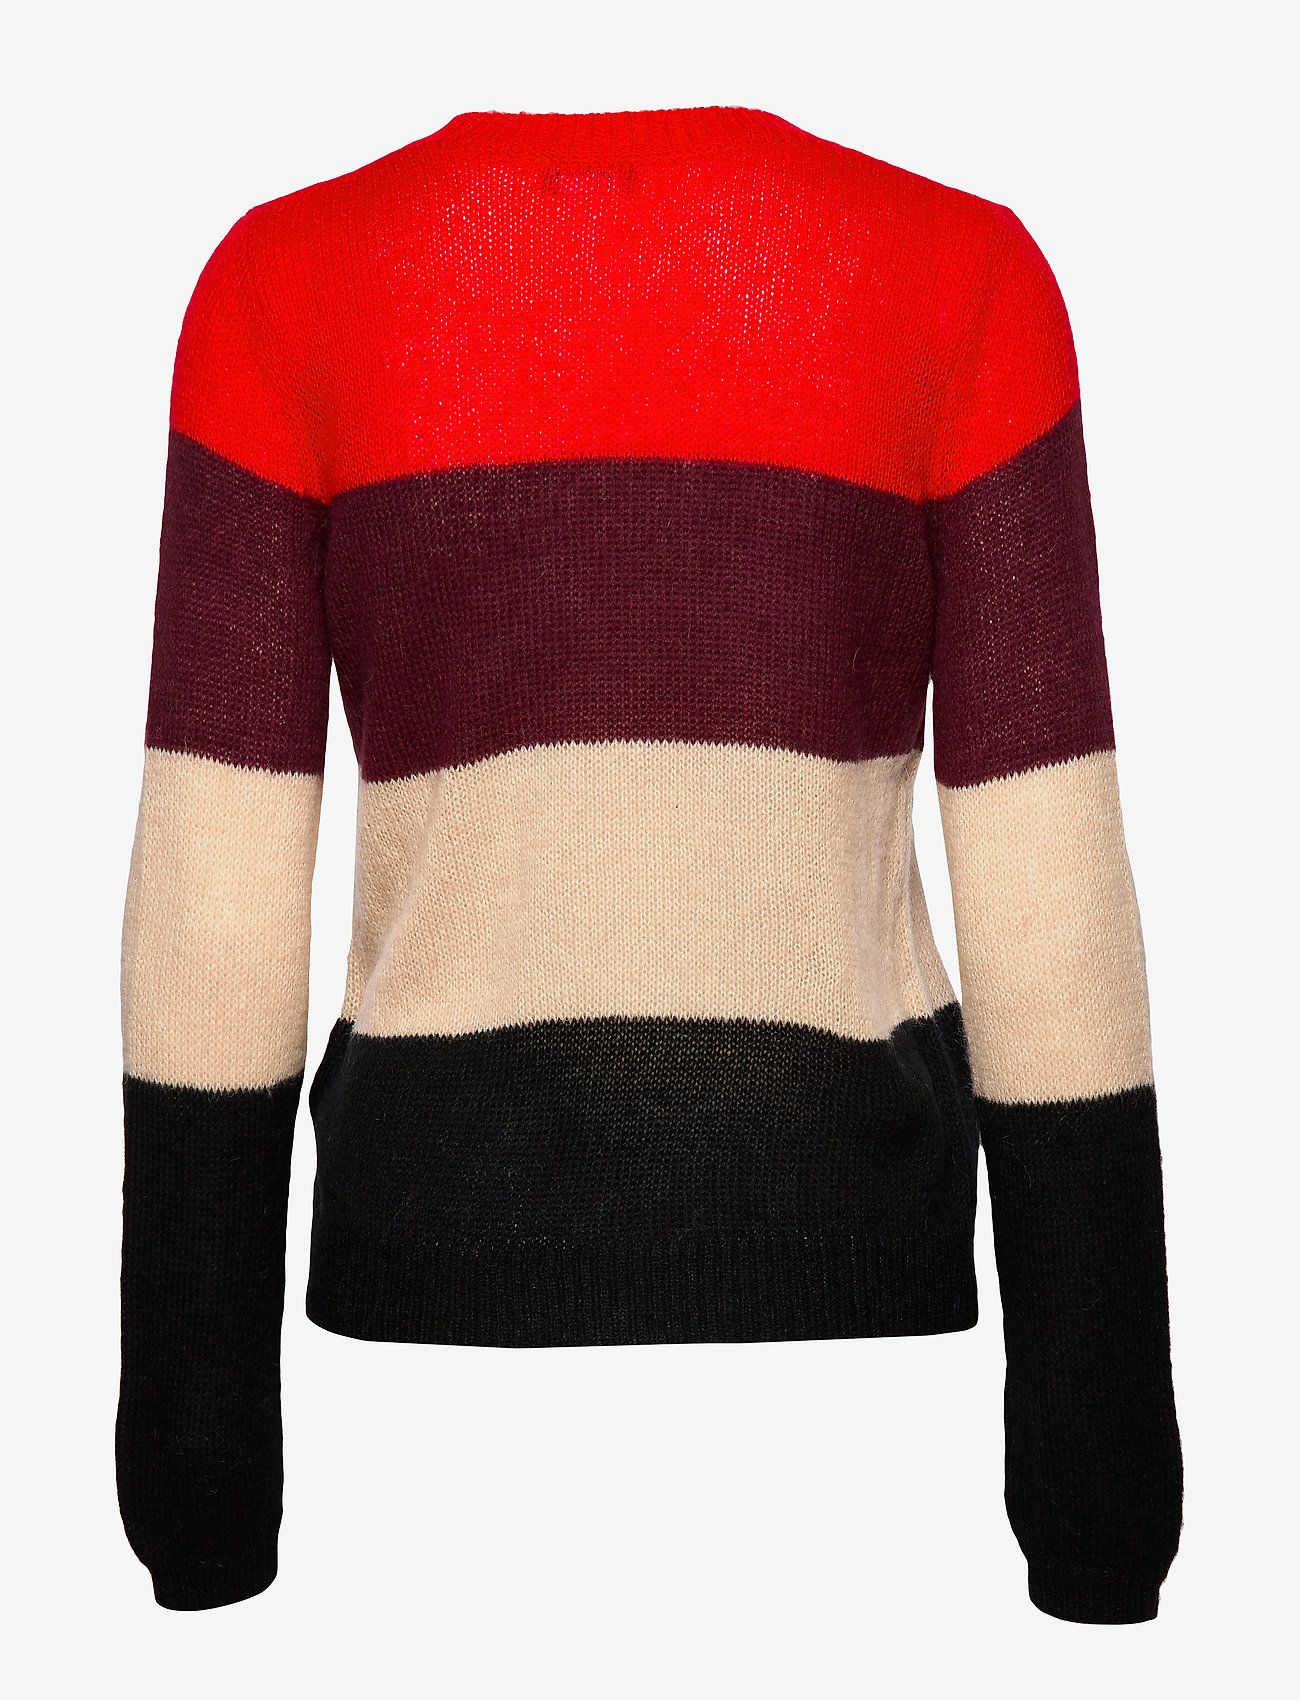 Taifun - PULLOVER LONG-SLEEVE - tröjor - lipstick red patterned - 1